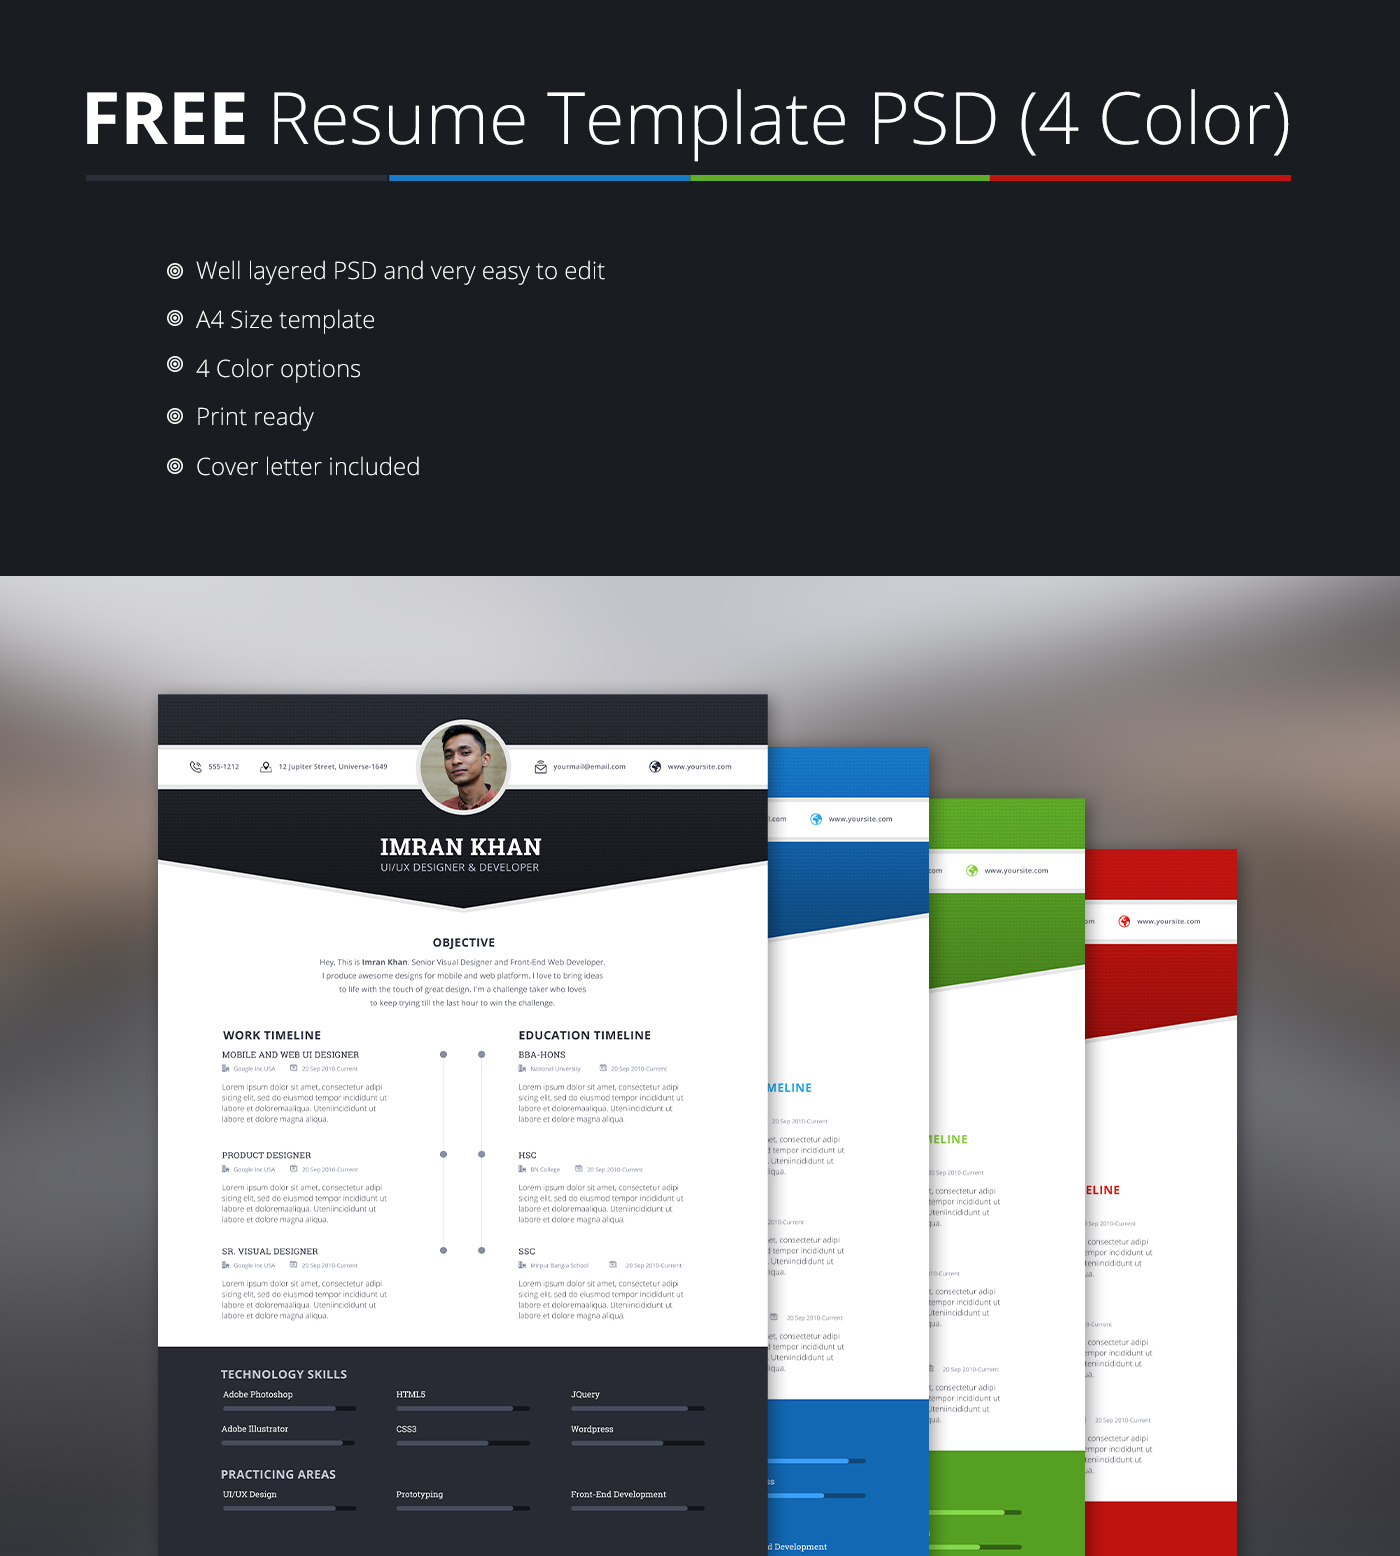 free psd resume template in four colors